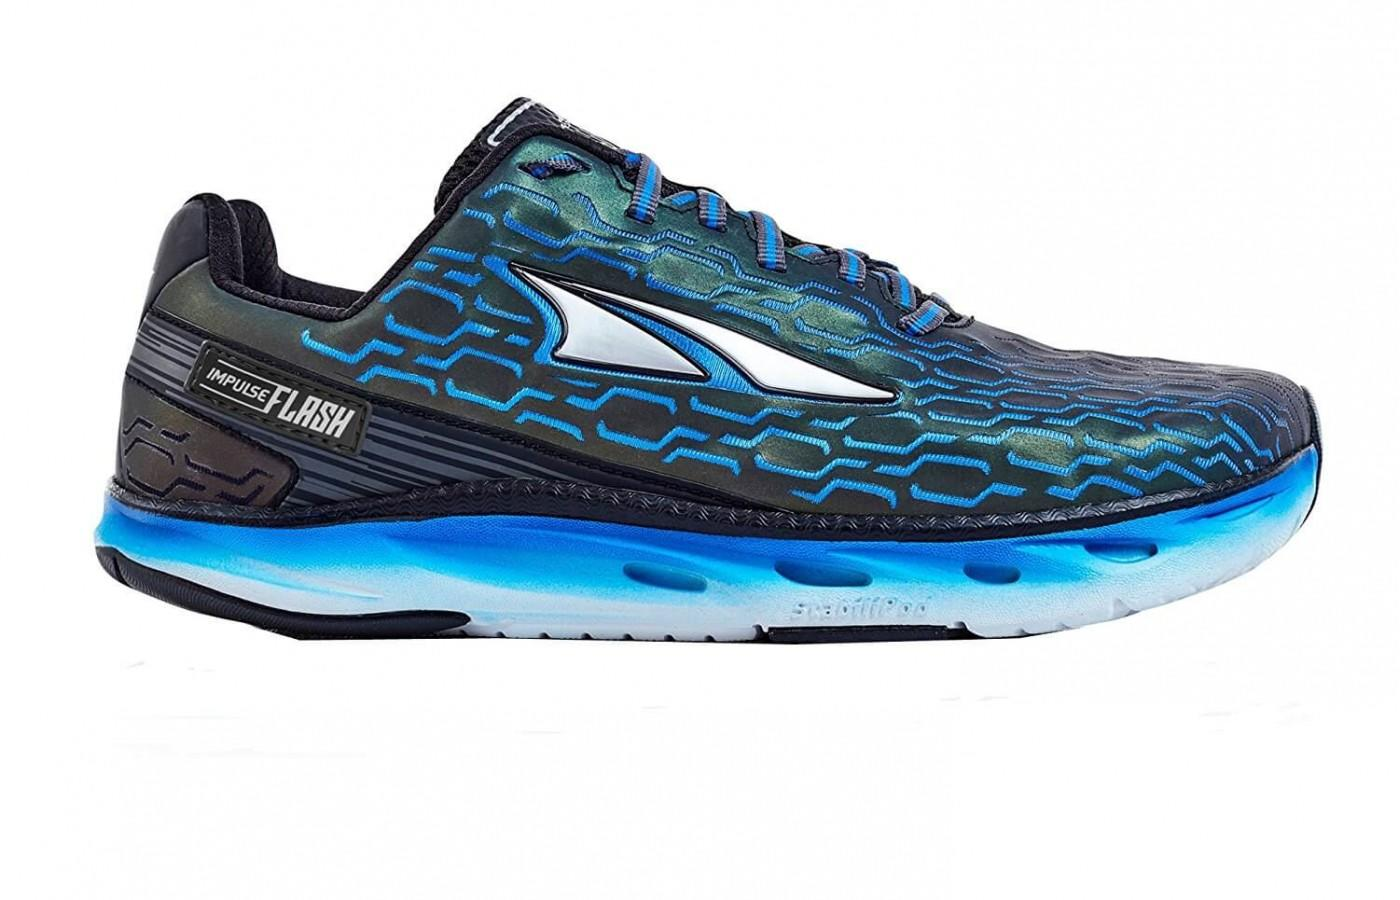 The Altra Impulse Flash features drainage ports in the rubber sole